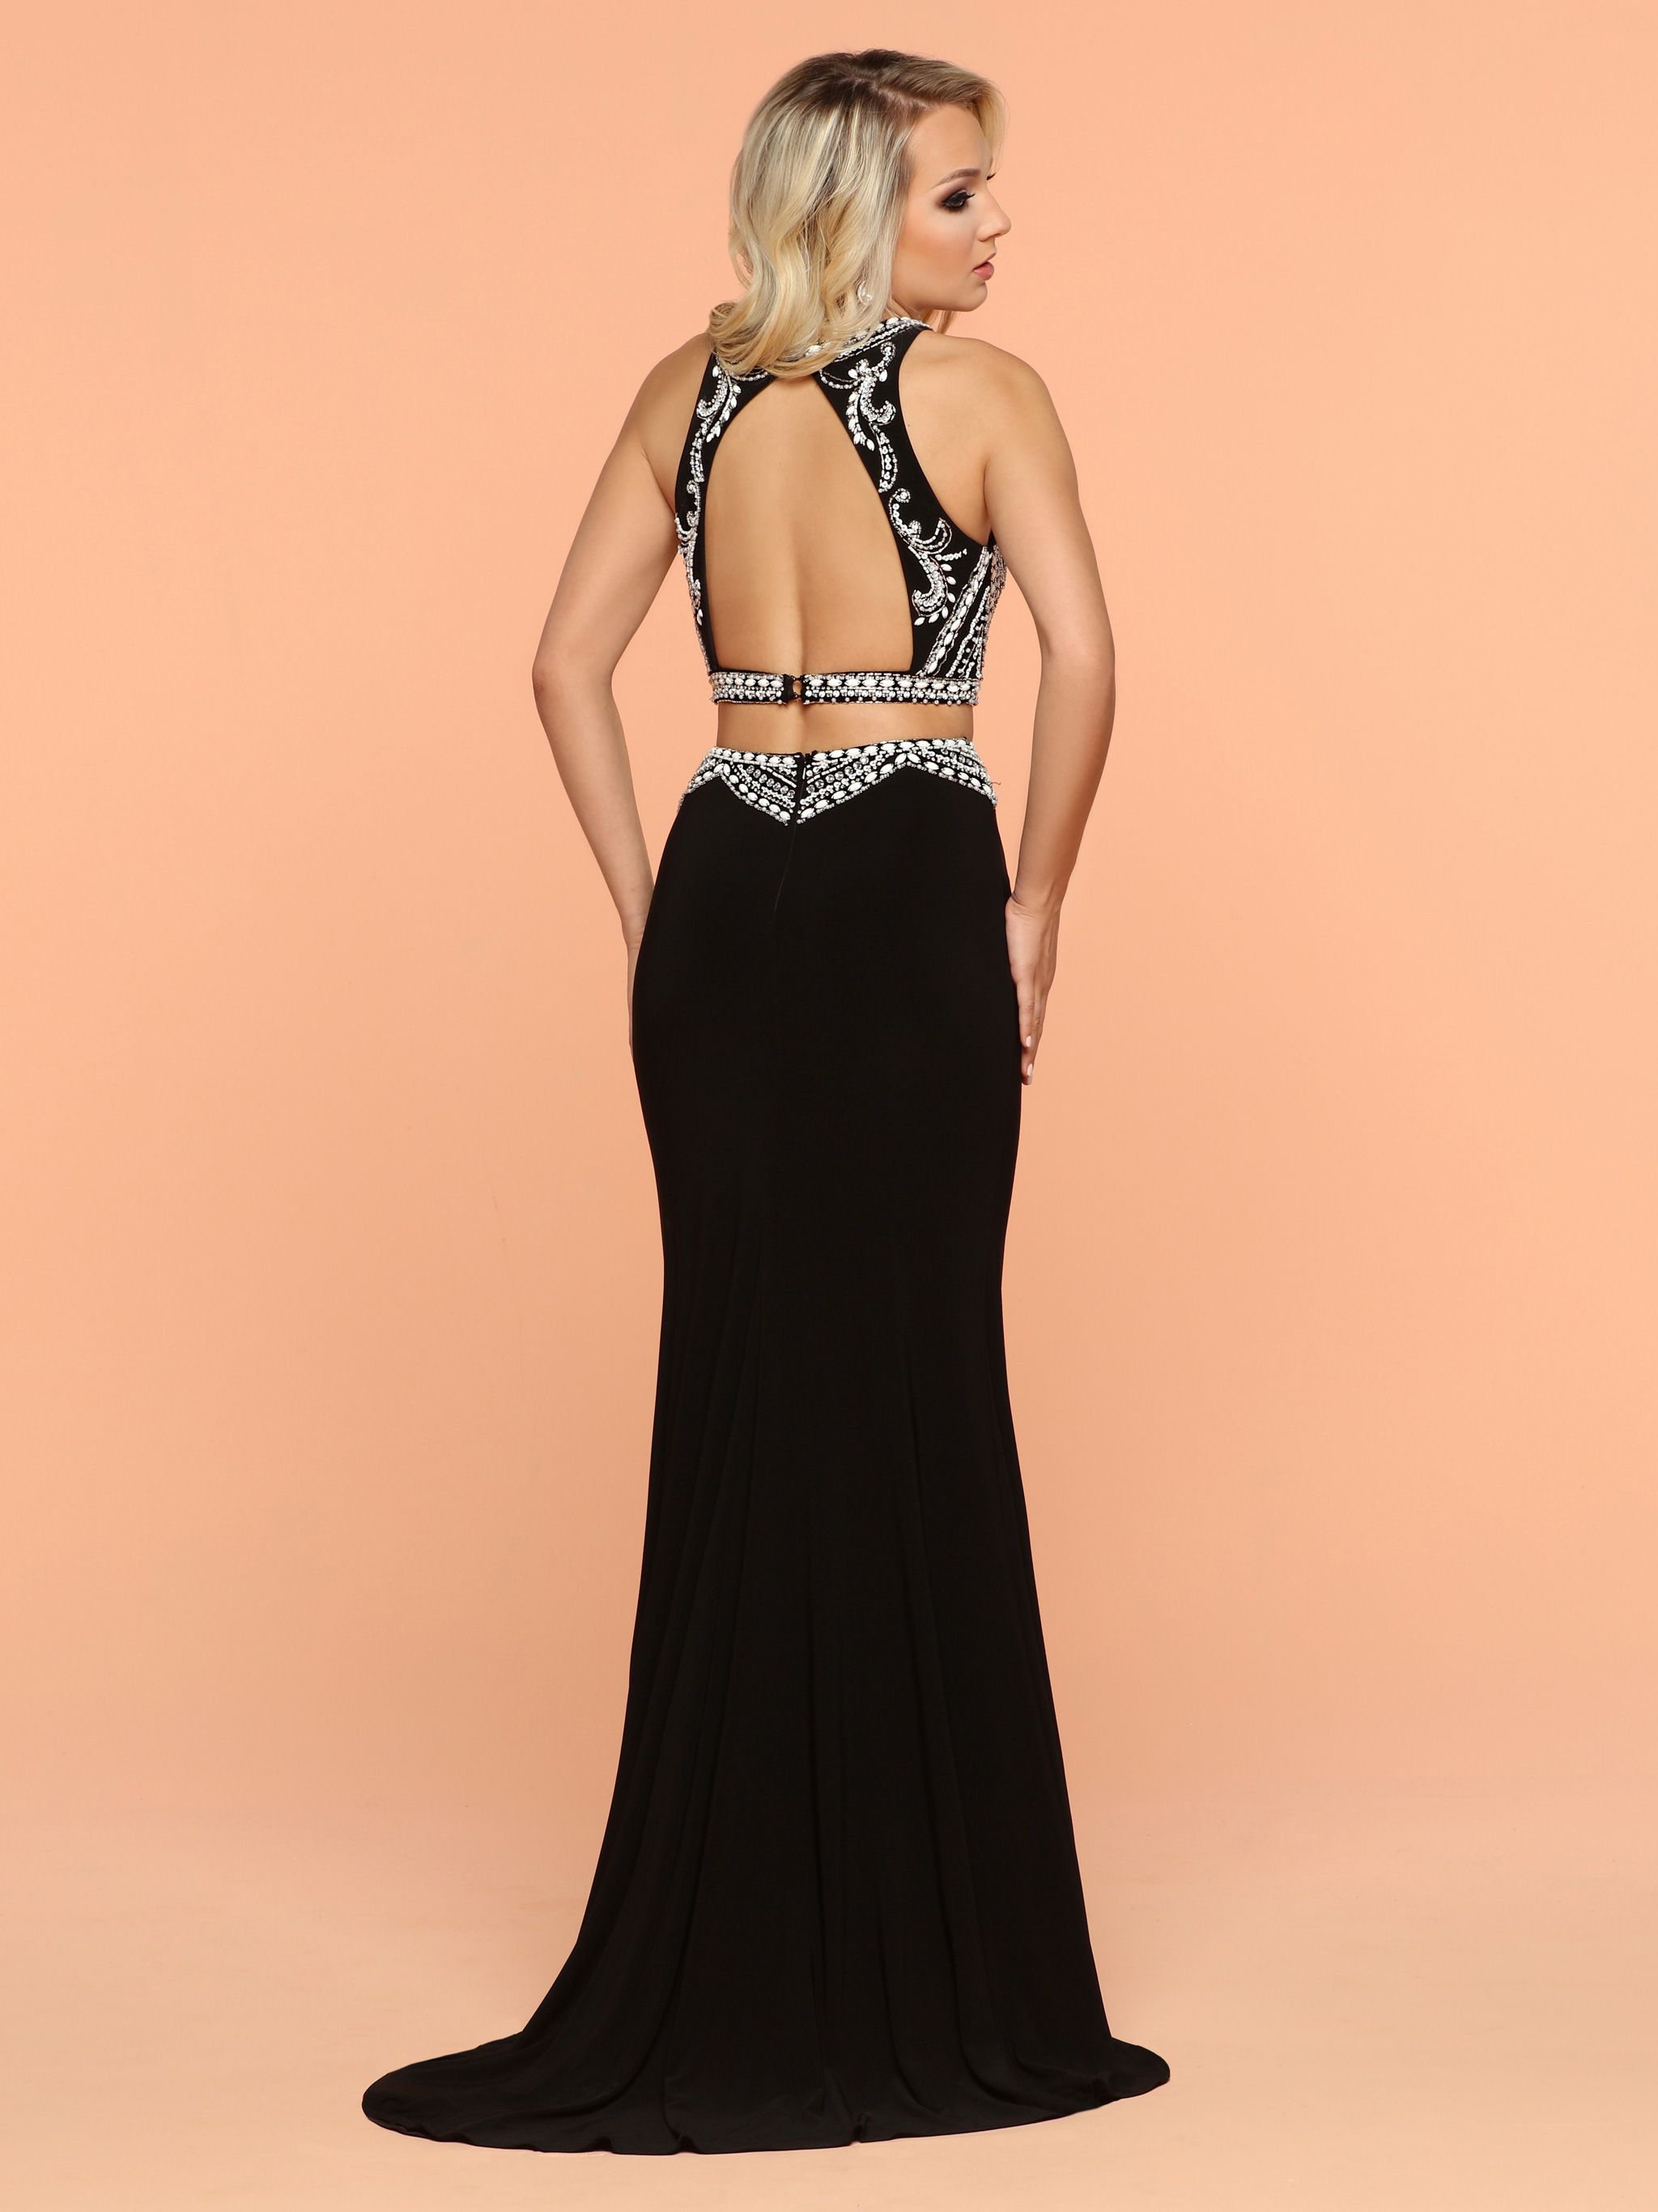 Image showing back view of style #71885